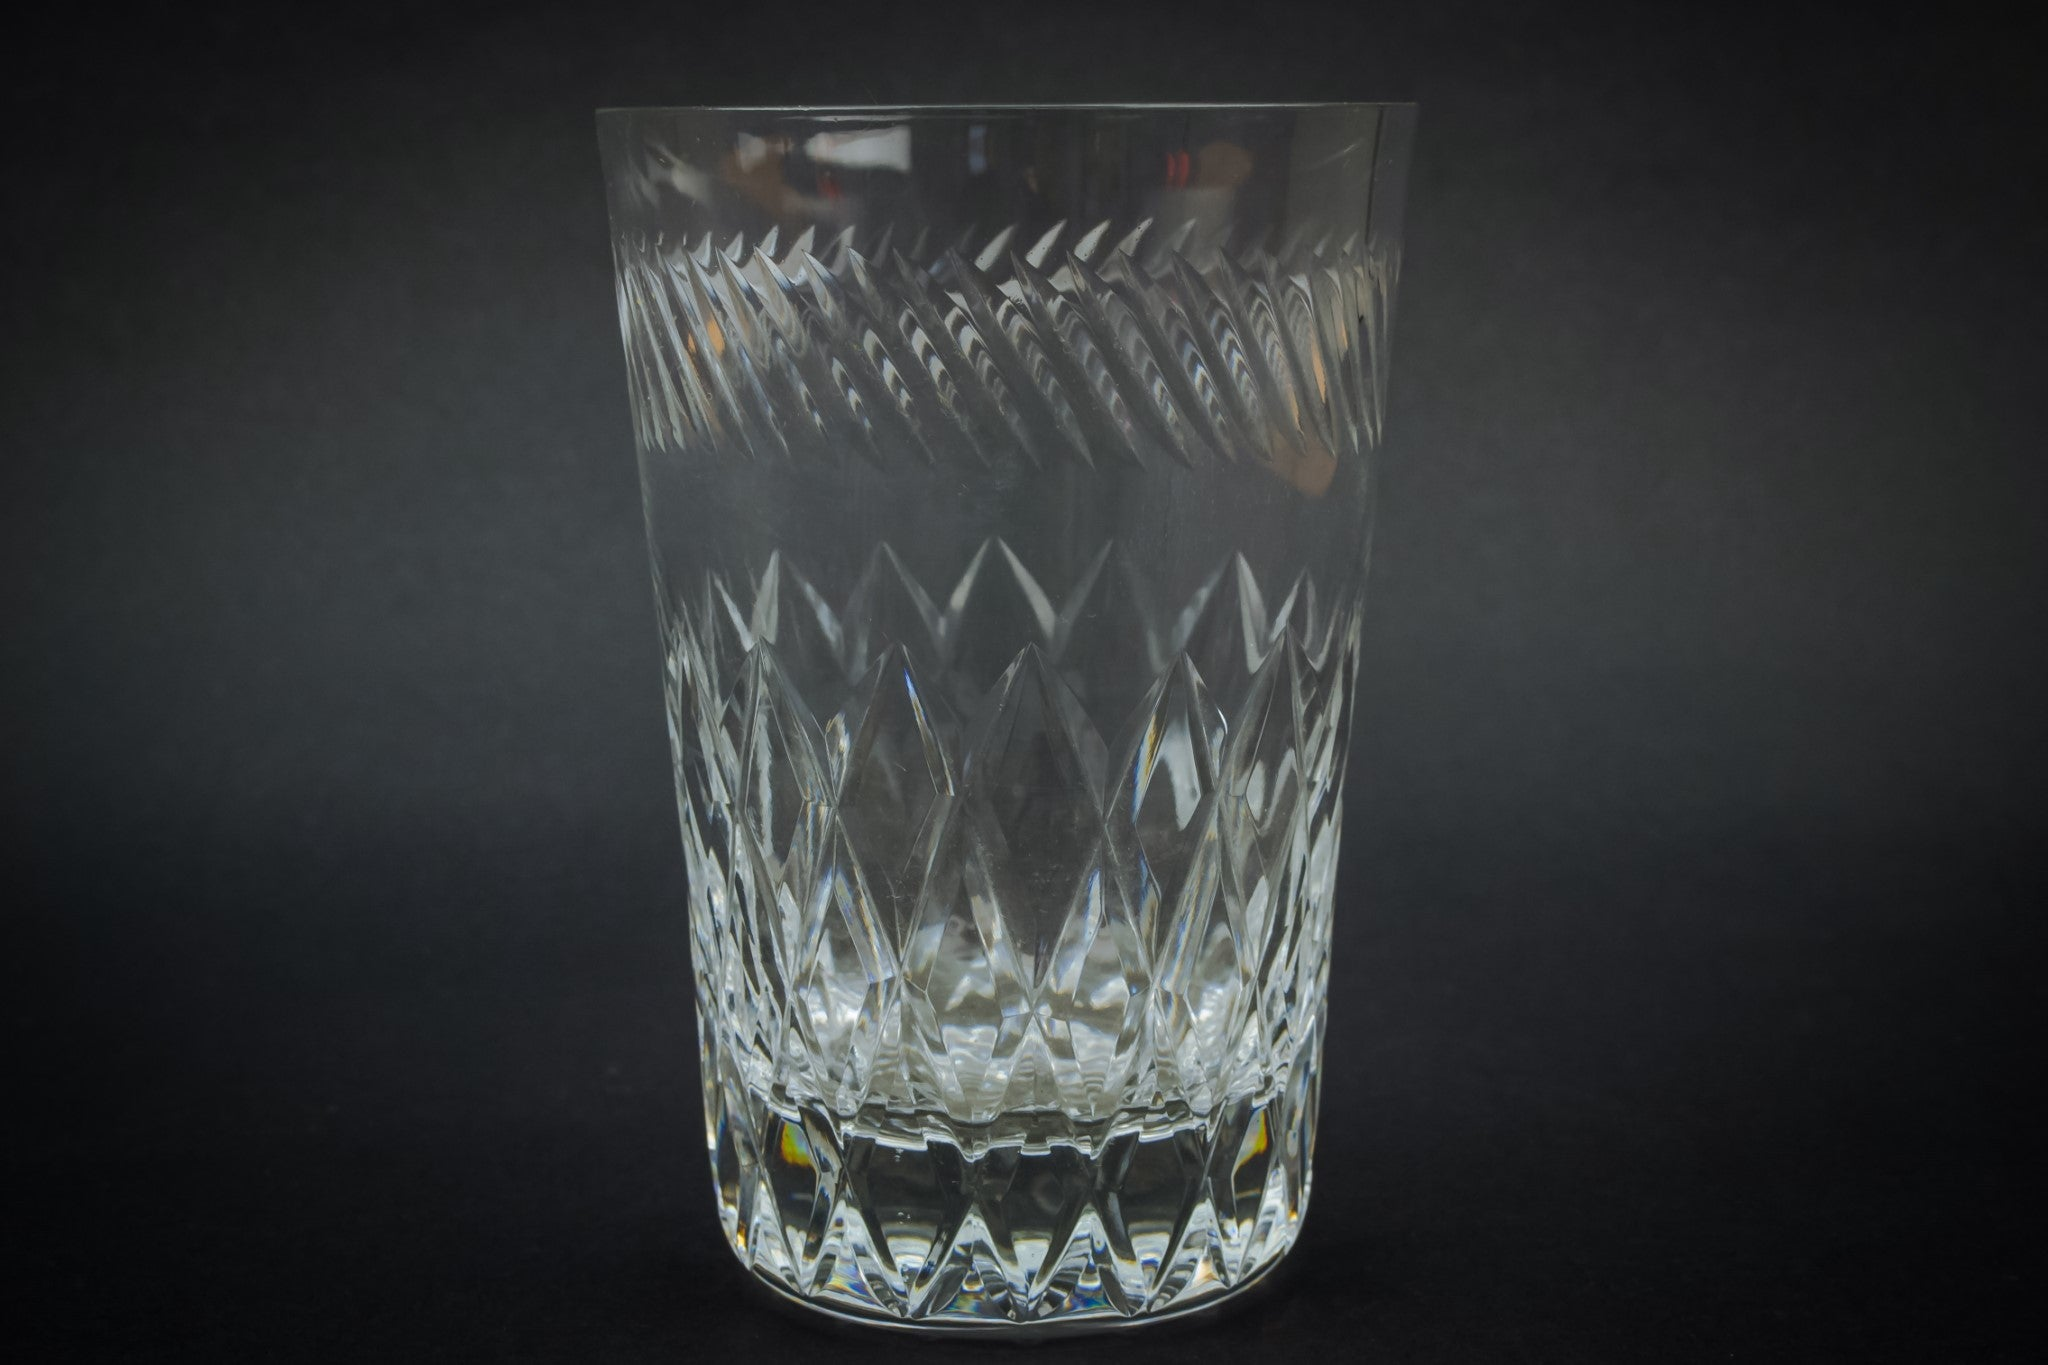 2 whisky tumbler glasses